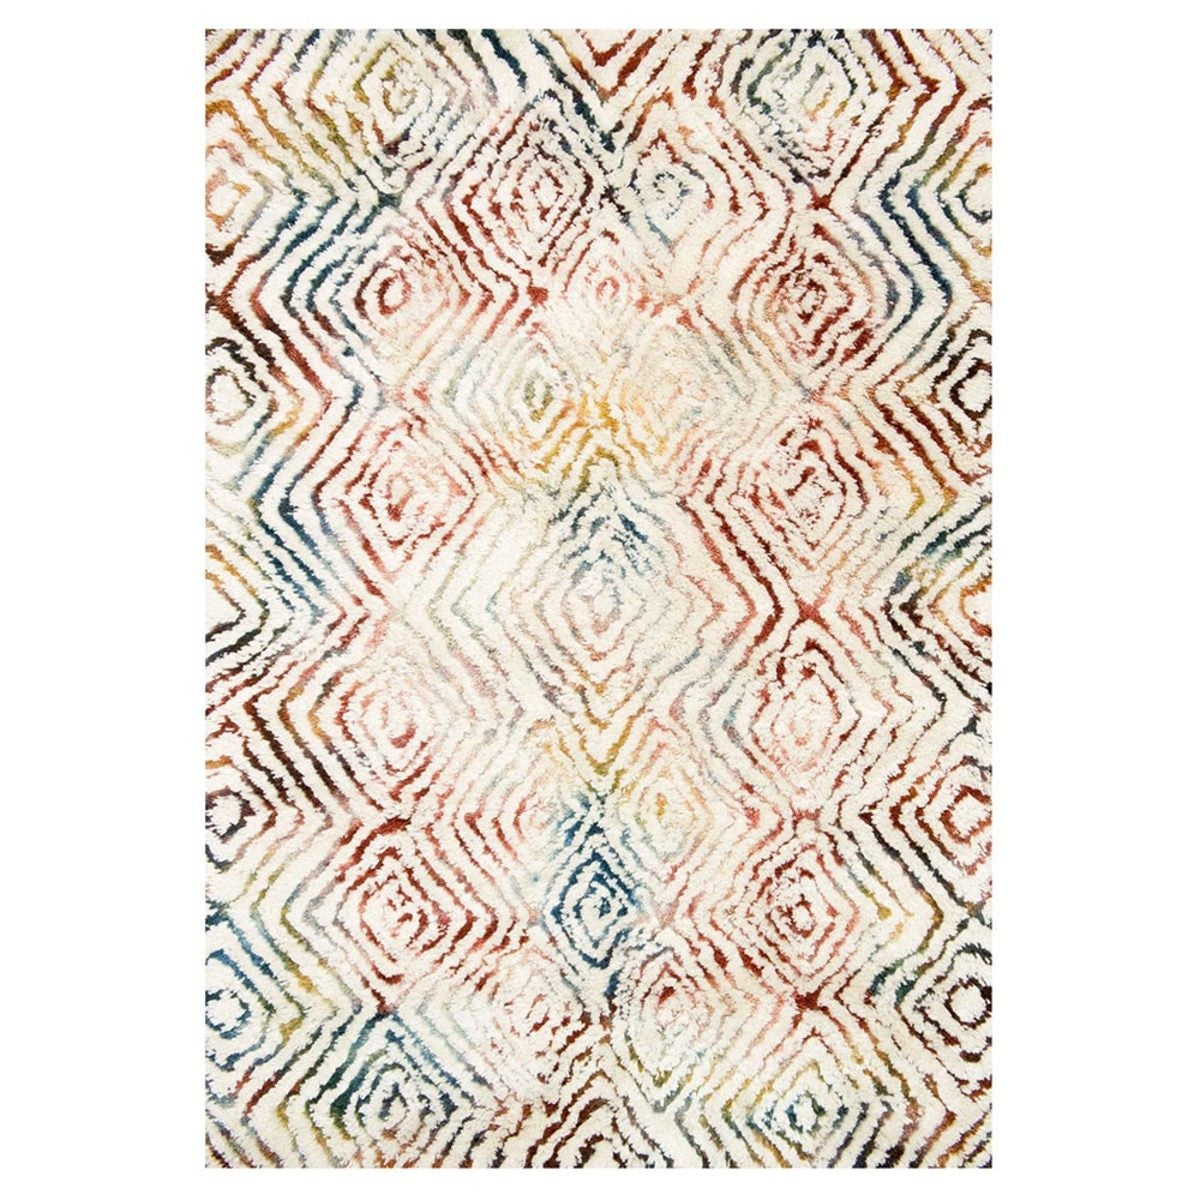 "Loloi Folklore Rug, 9'3"" x 13' - Prism Groove"